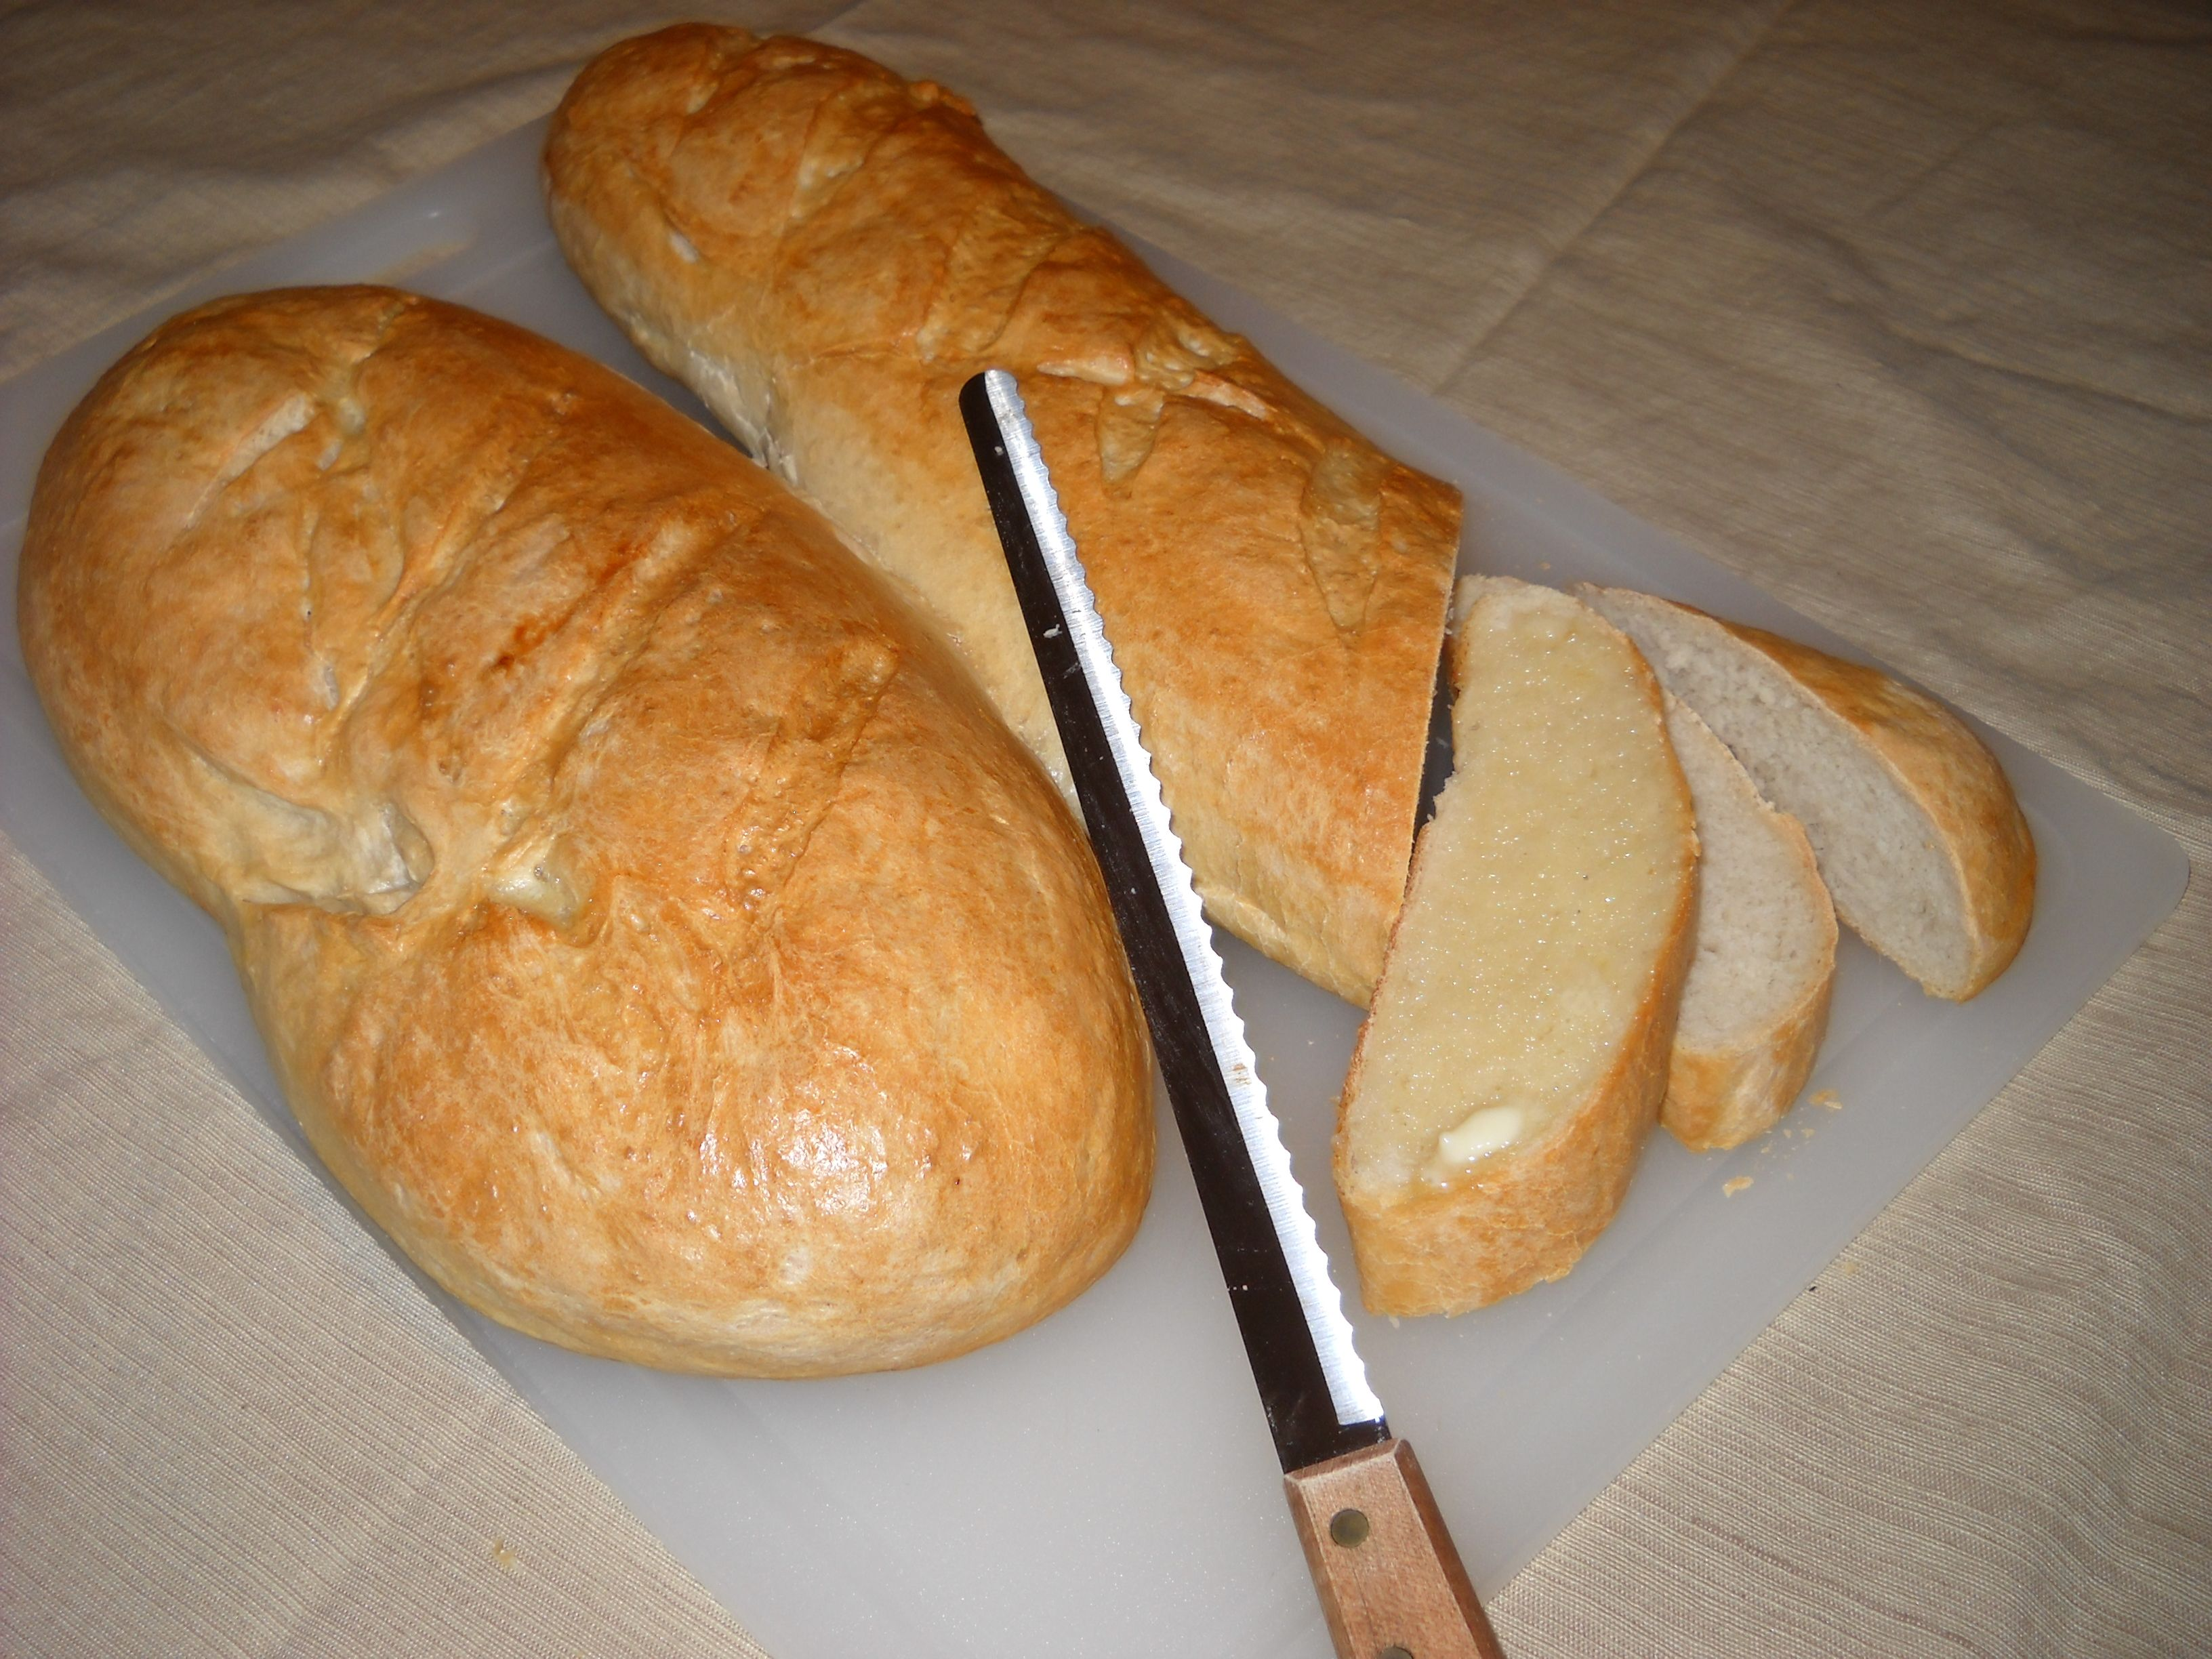 Homemade french bread. My family loves it when I make it ...